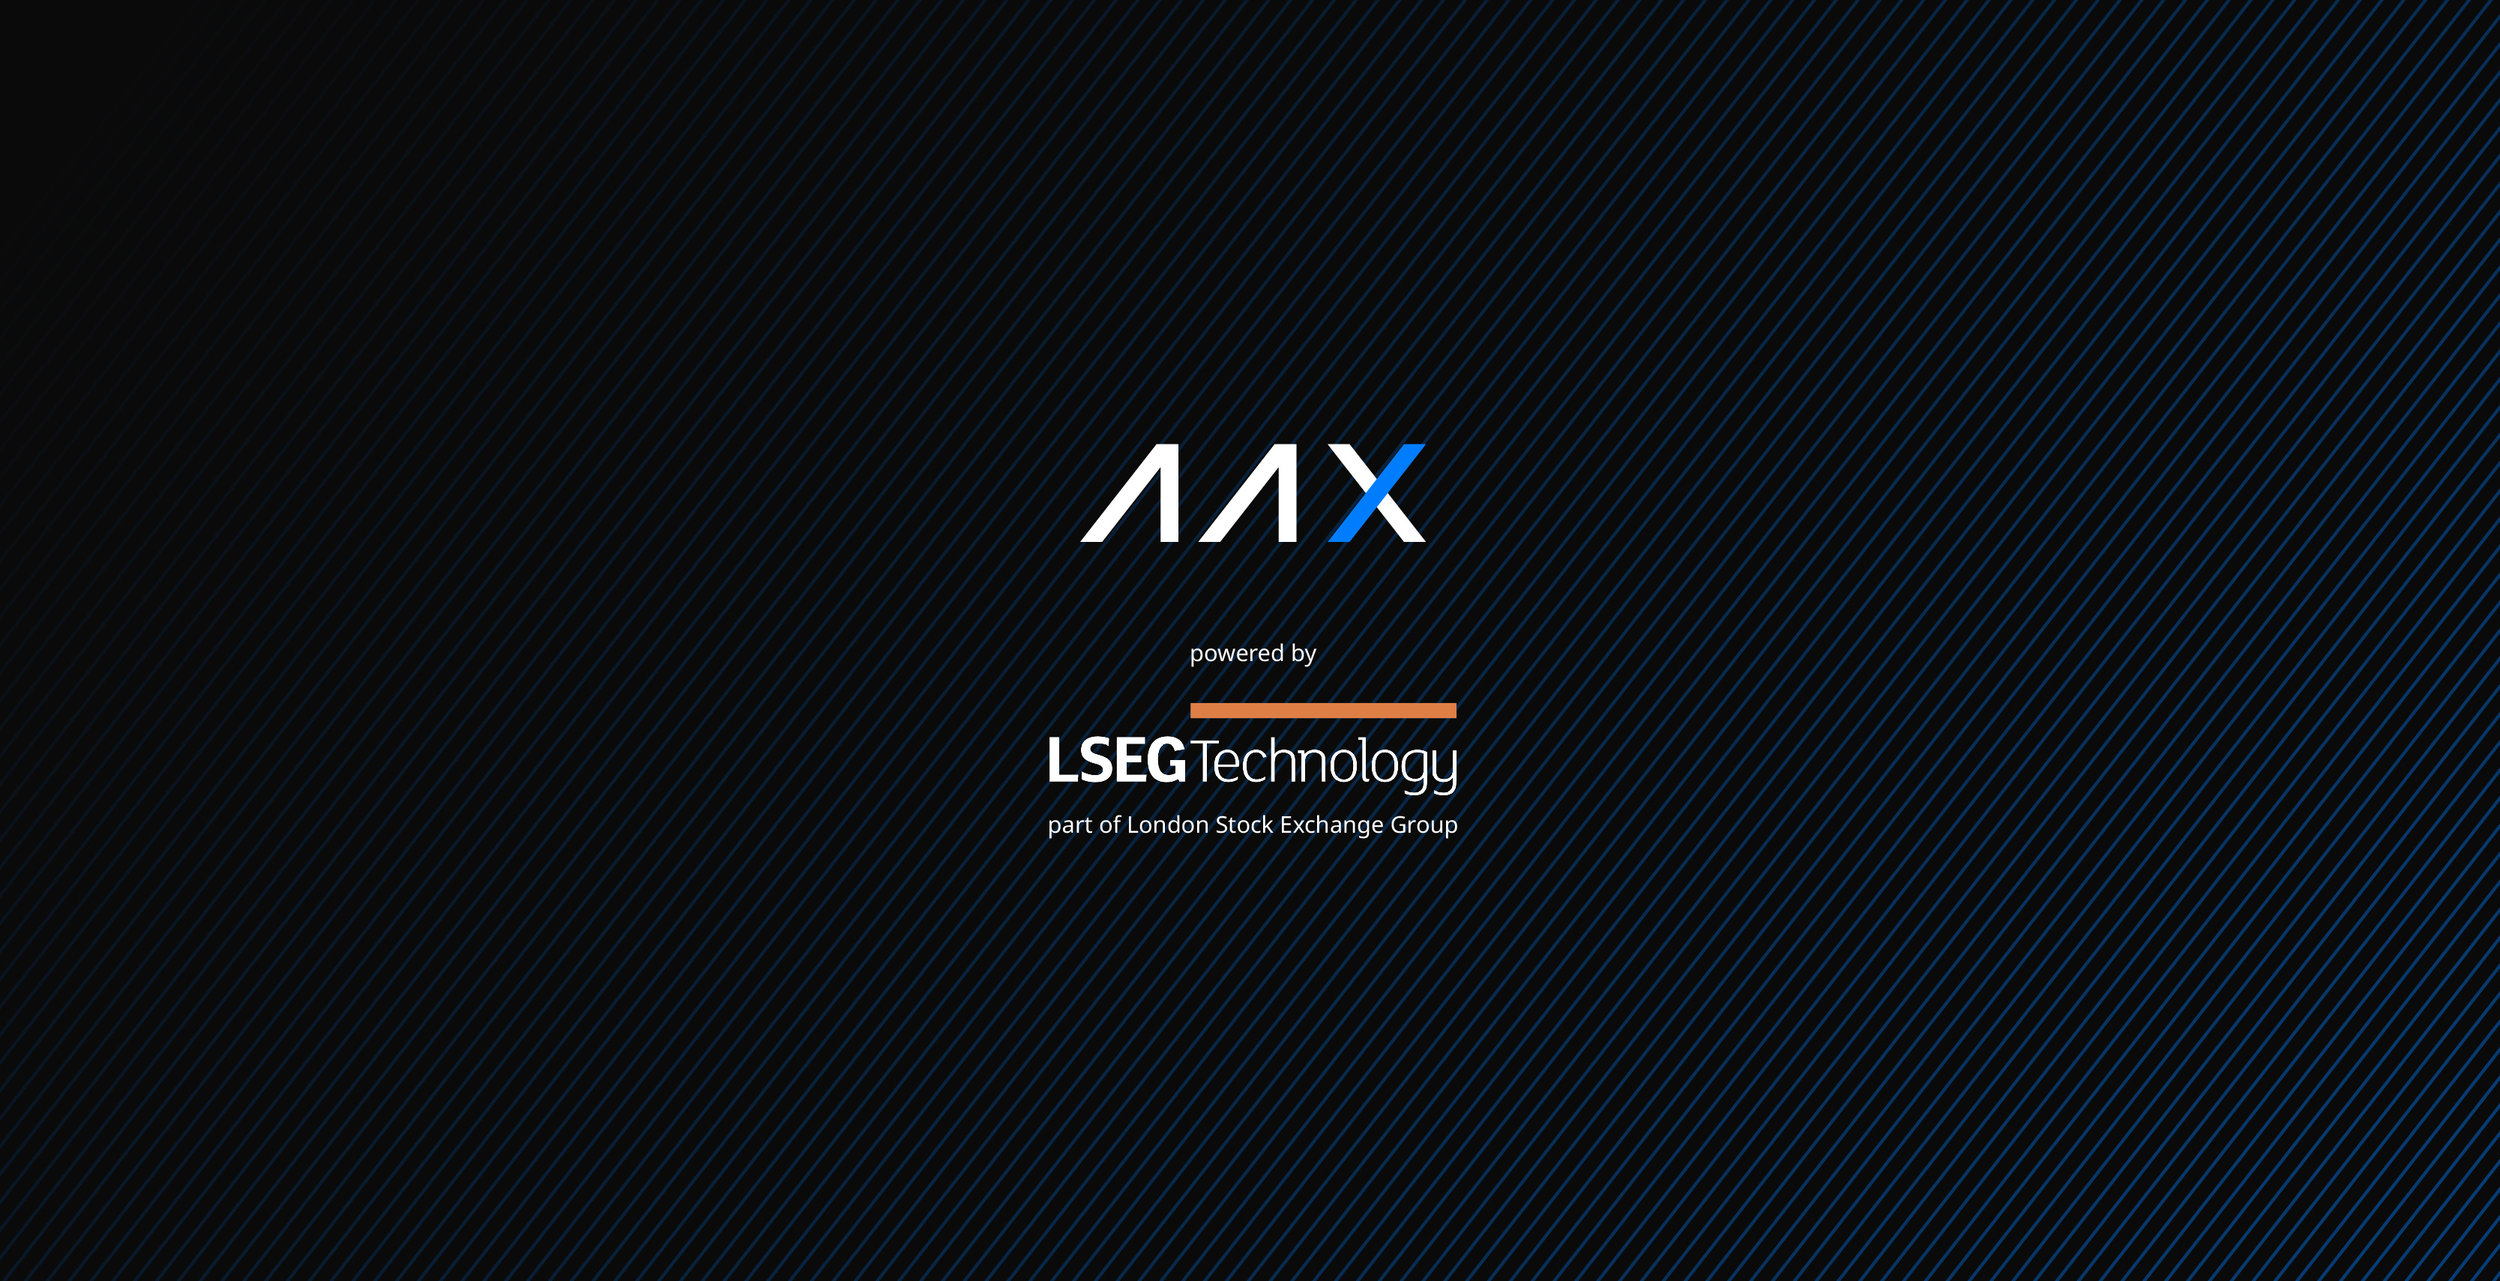 AAX LSEG Technology